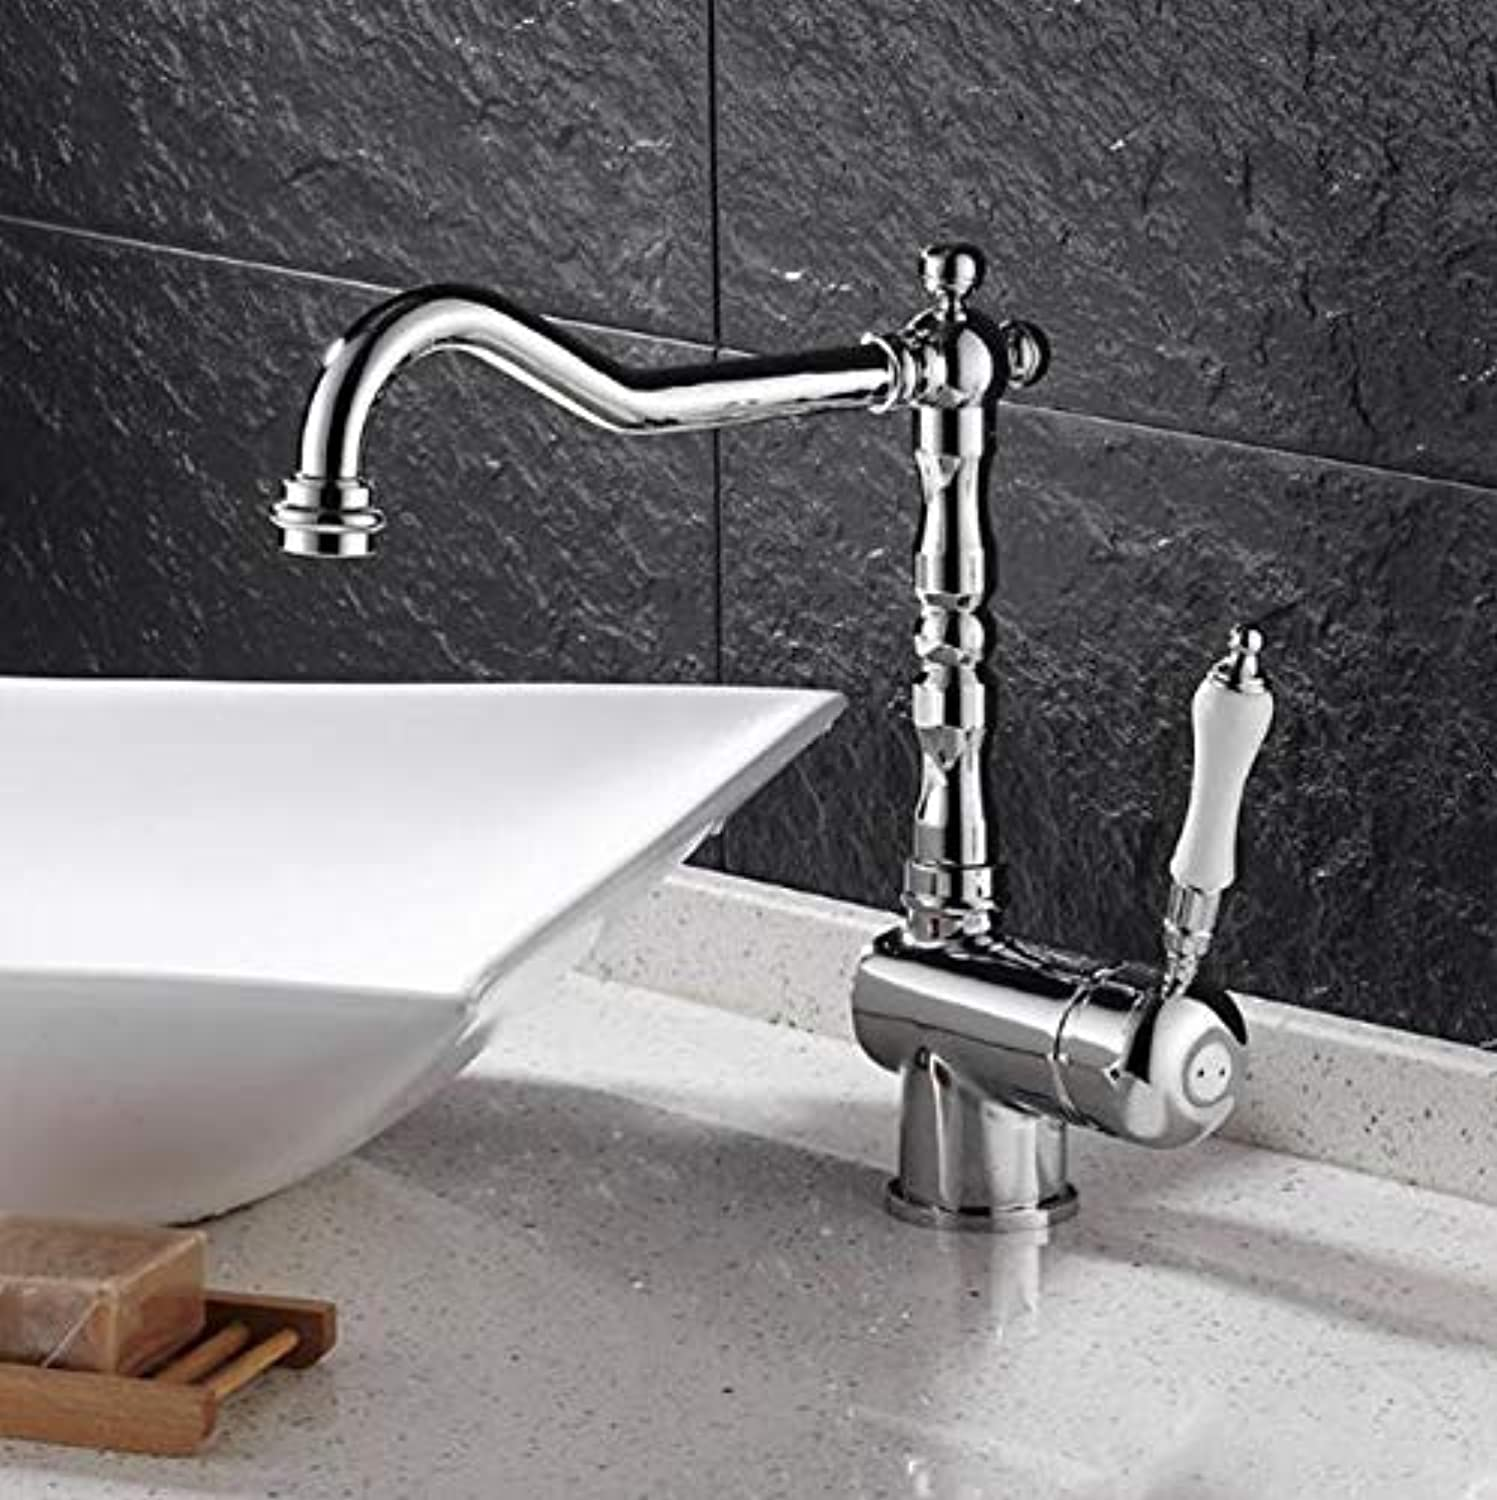 Decorry Luxury redating Hot and Cold Taps Kitchen Faucet Mixers Taps Single Lever Kitchen Sink Taps Sink Chrome Bathroom Faucet Xt-98